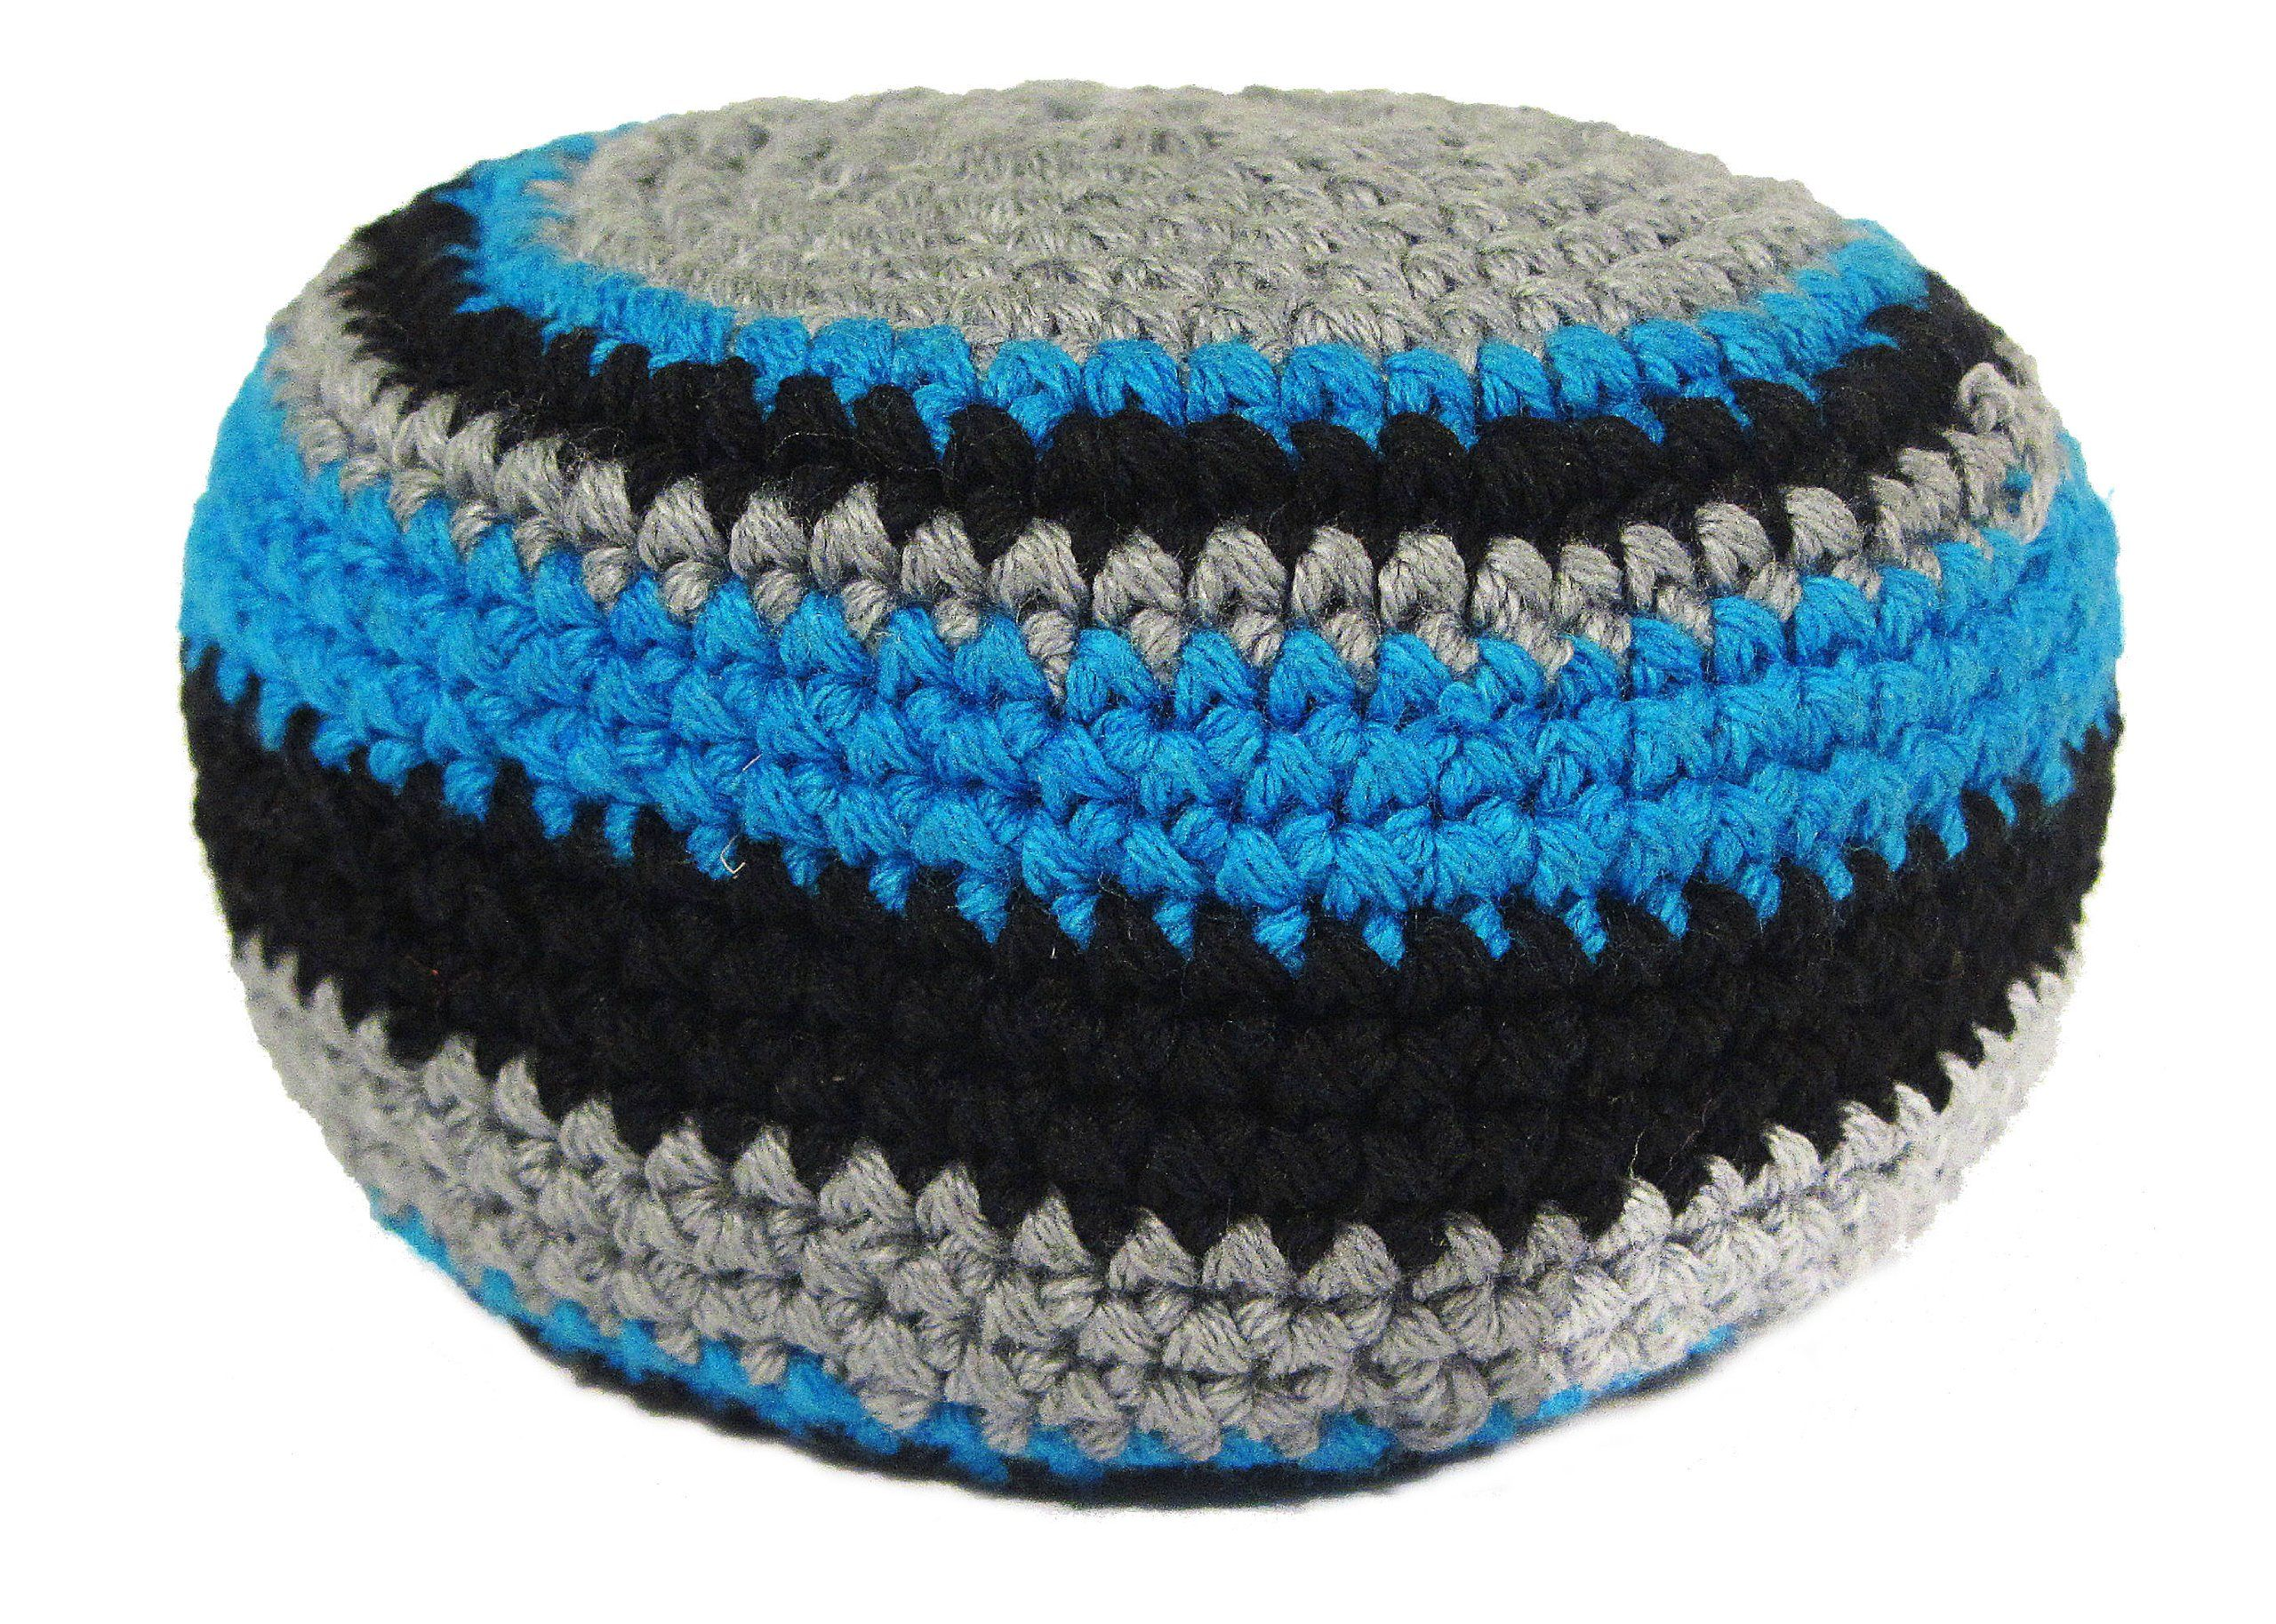 Hacky Sack Black N Blue. This Hacky Sack is made by Fair